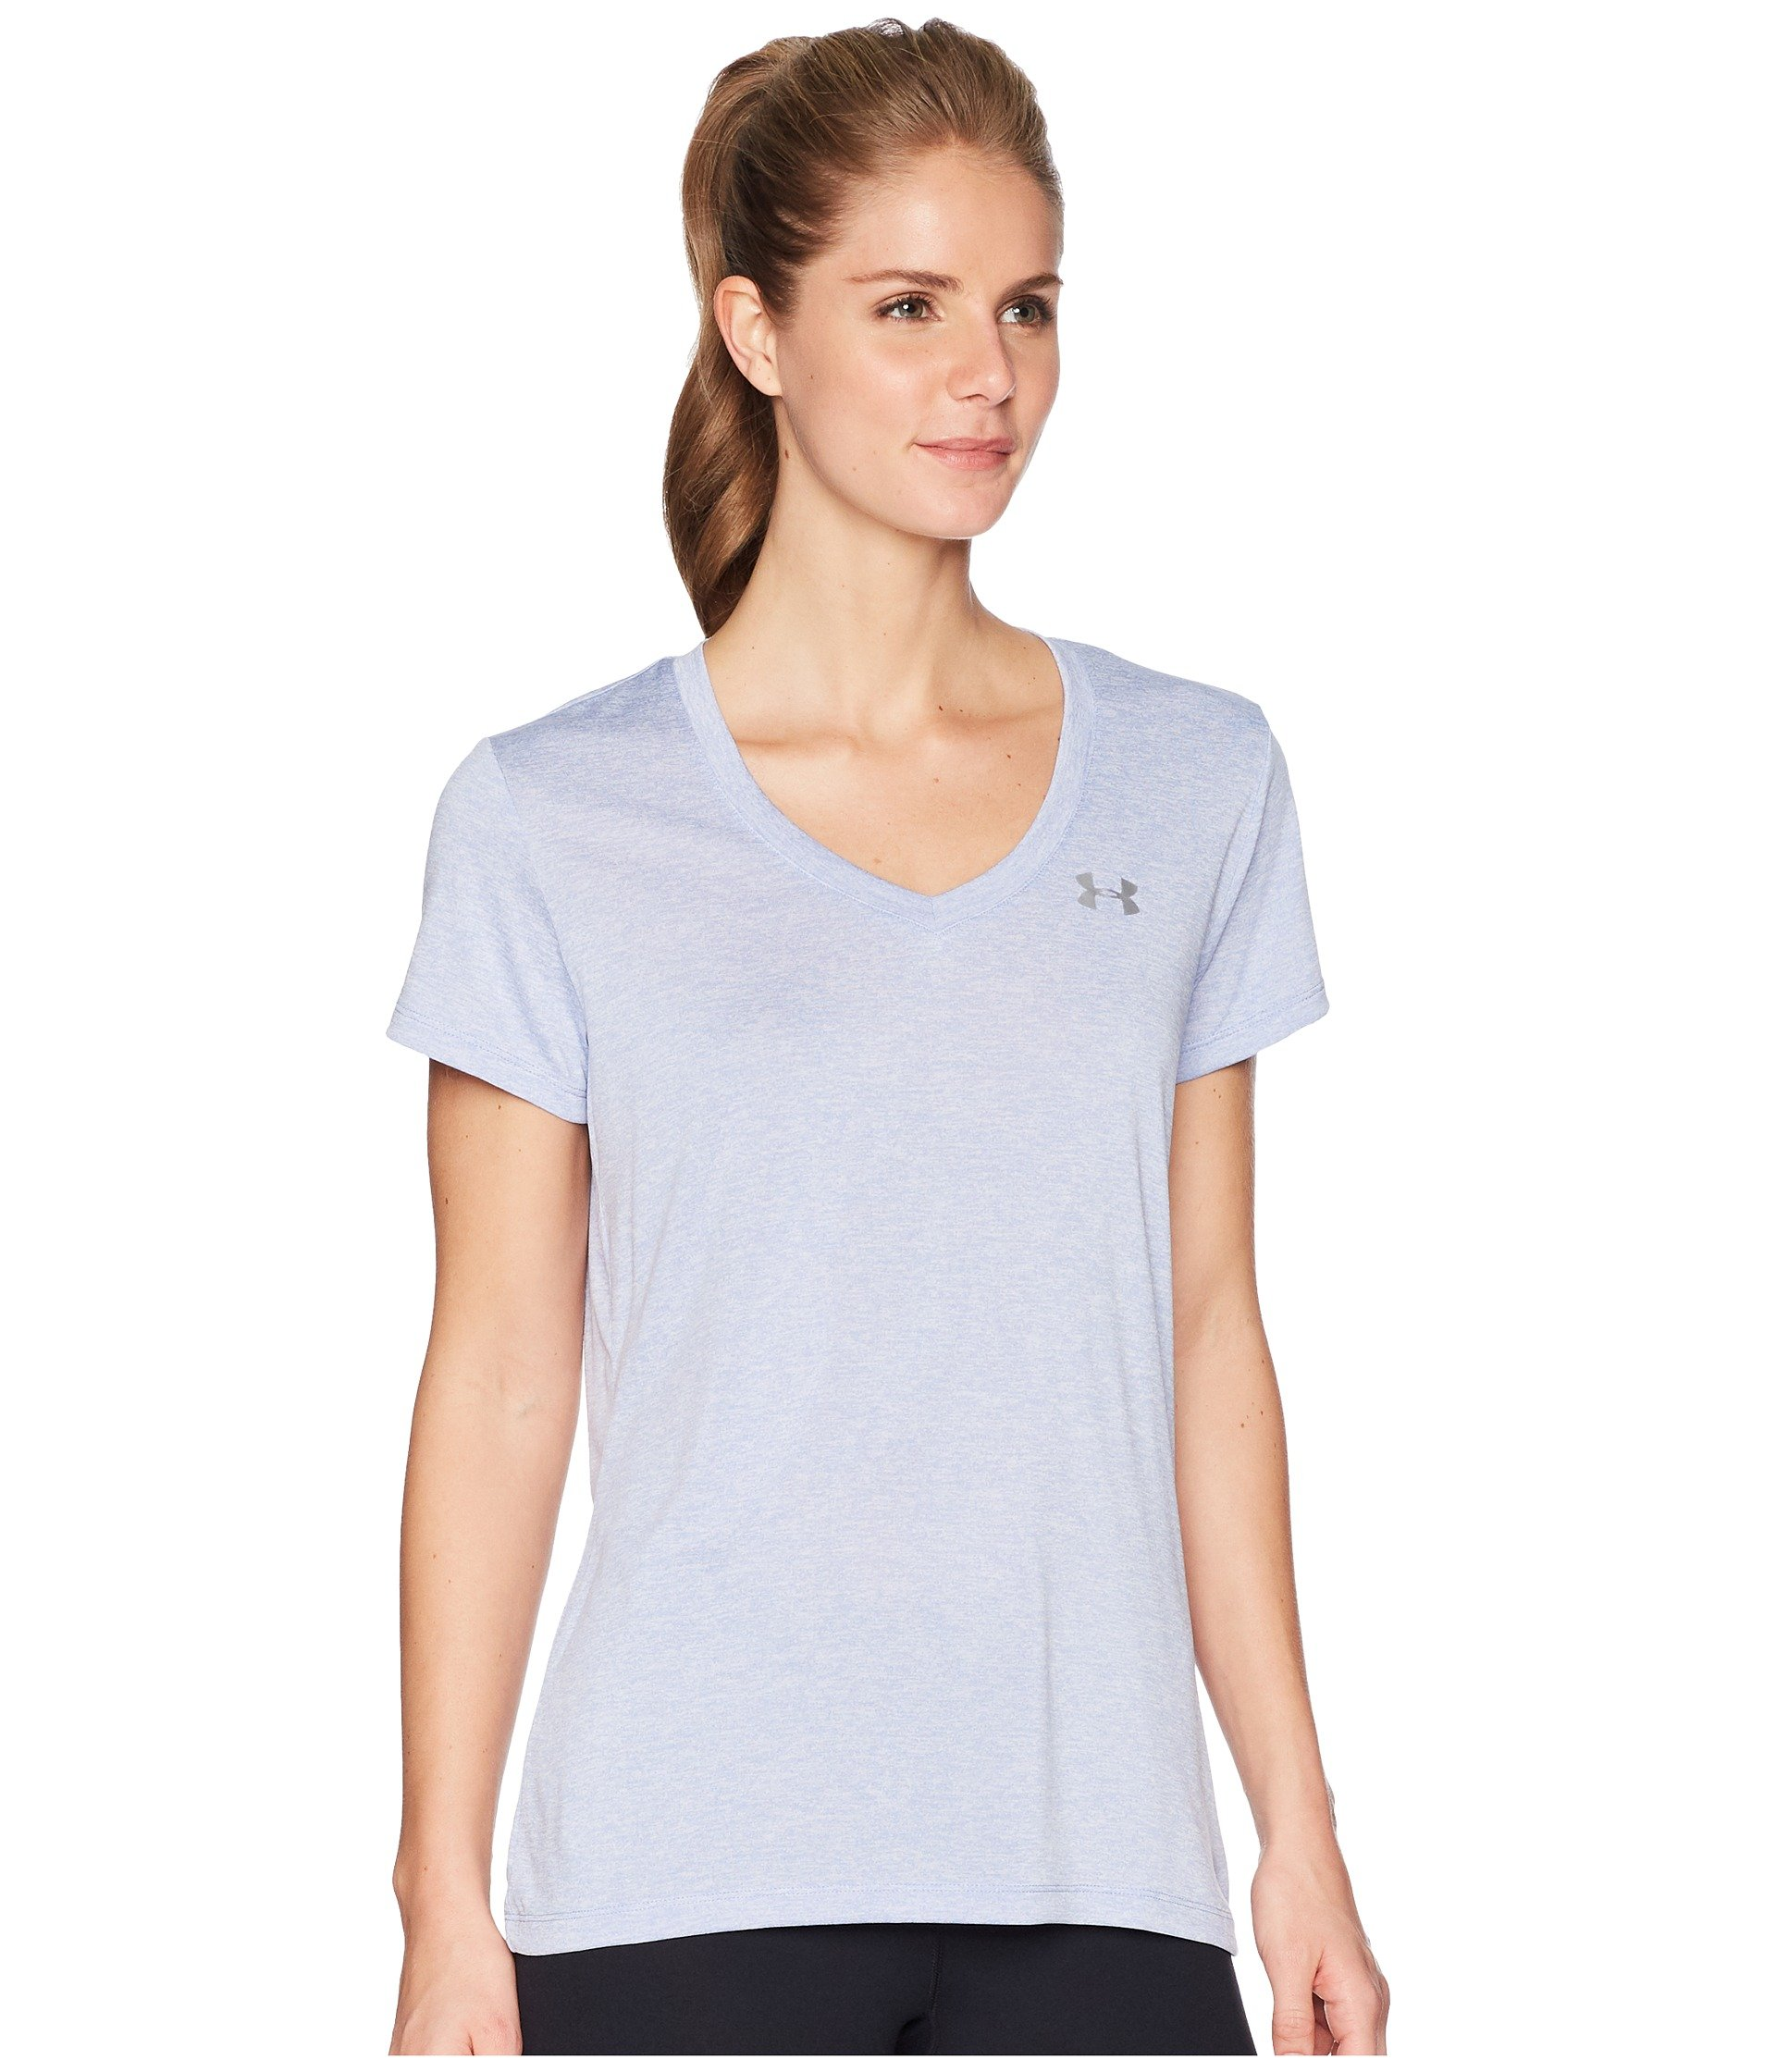 Under Armour Women's UA Tech¿ Twist V-Neck Talc Blue/Metallic Silver Small by Under Armour (Image #5)